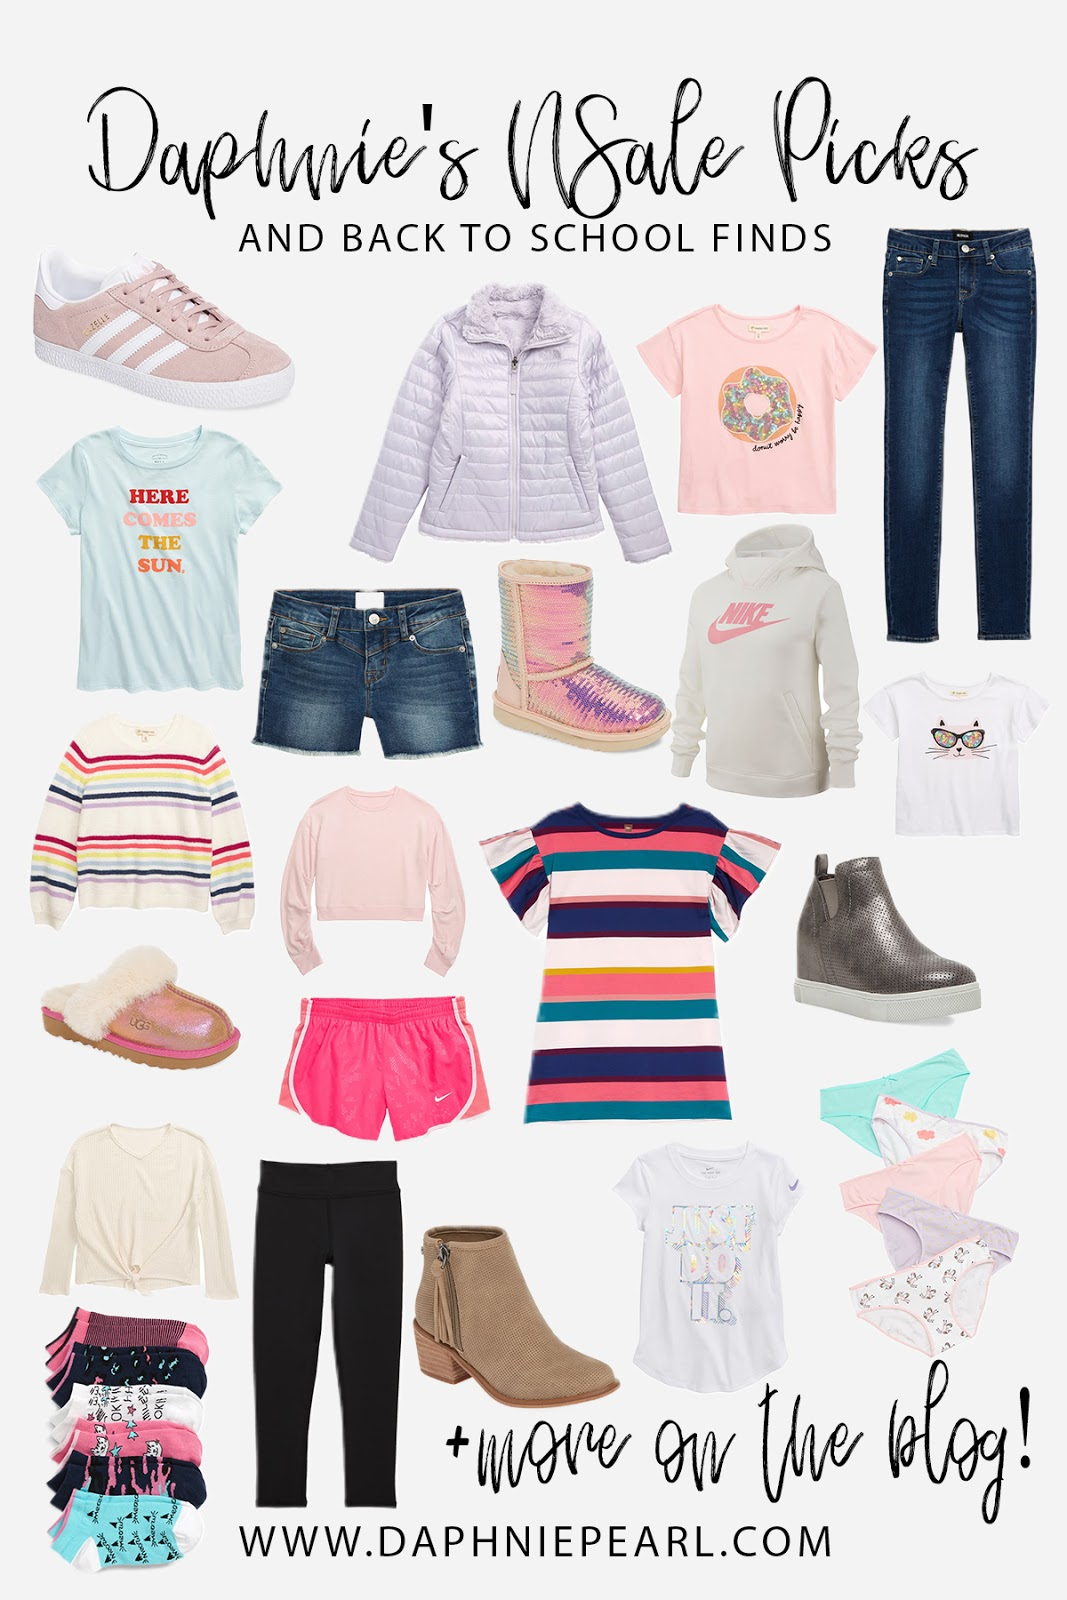 Daphnie's picks and back to school finds from the Nordstrom Anniversary Sale Early Access little girl style tween style inspiration inspo outfit idea outfit ideas shirt shoes shorts denim jeans pants sneakers booties sandals slides ugg boots tshirt tee top sale promotion